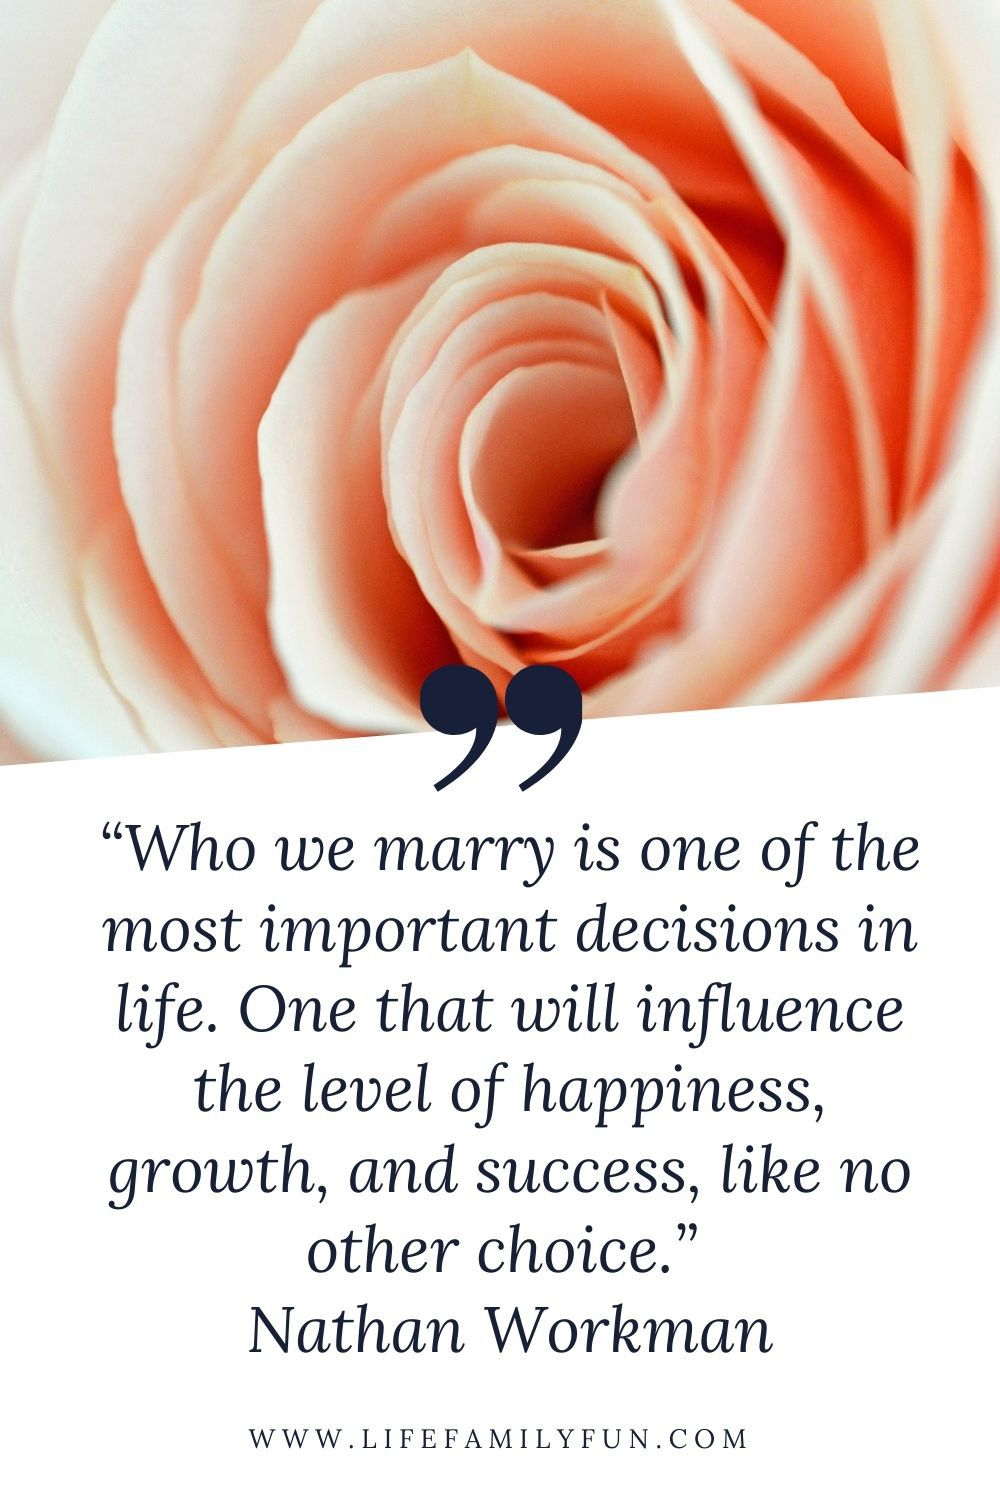 Happy Marriage Quote by Nathan Workman